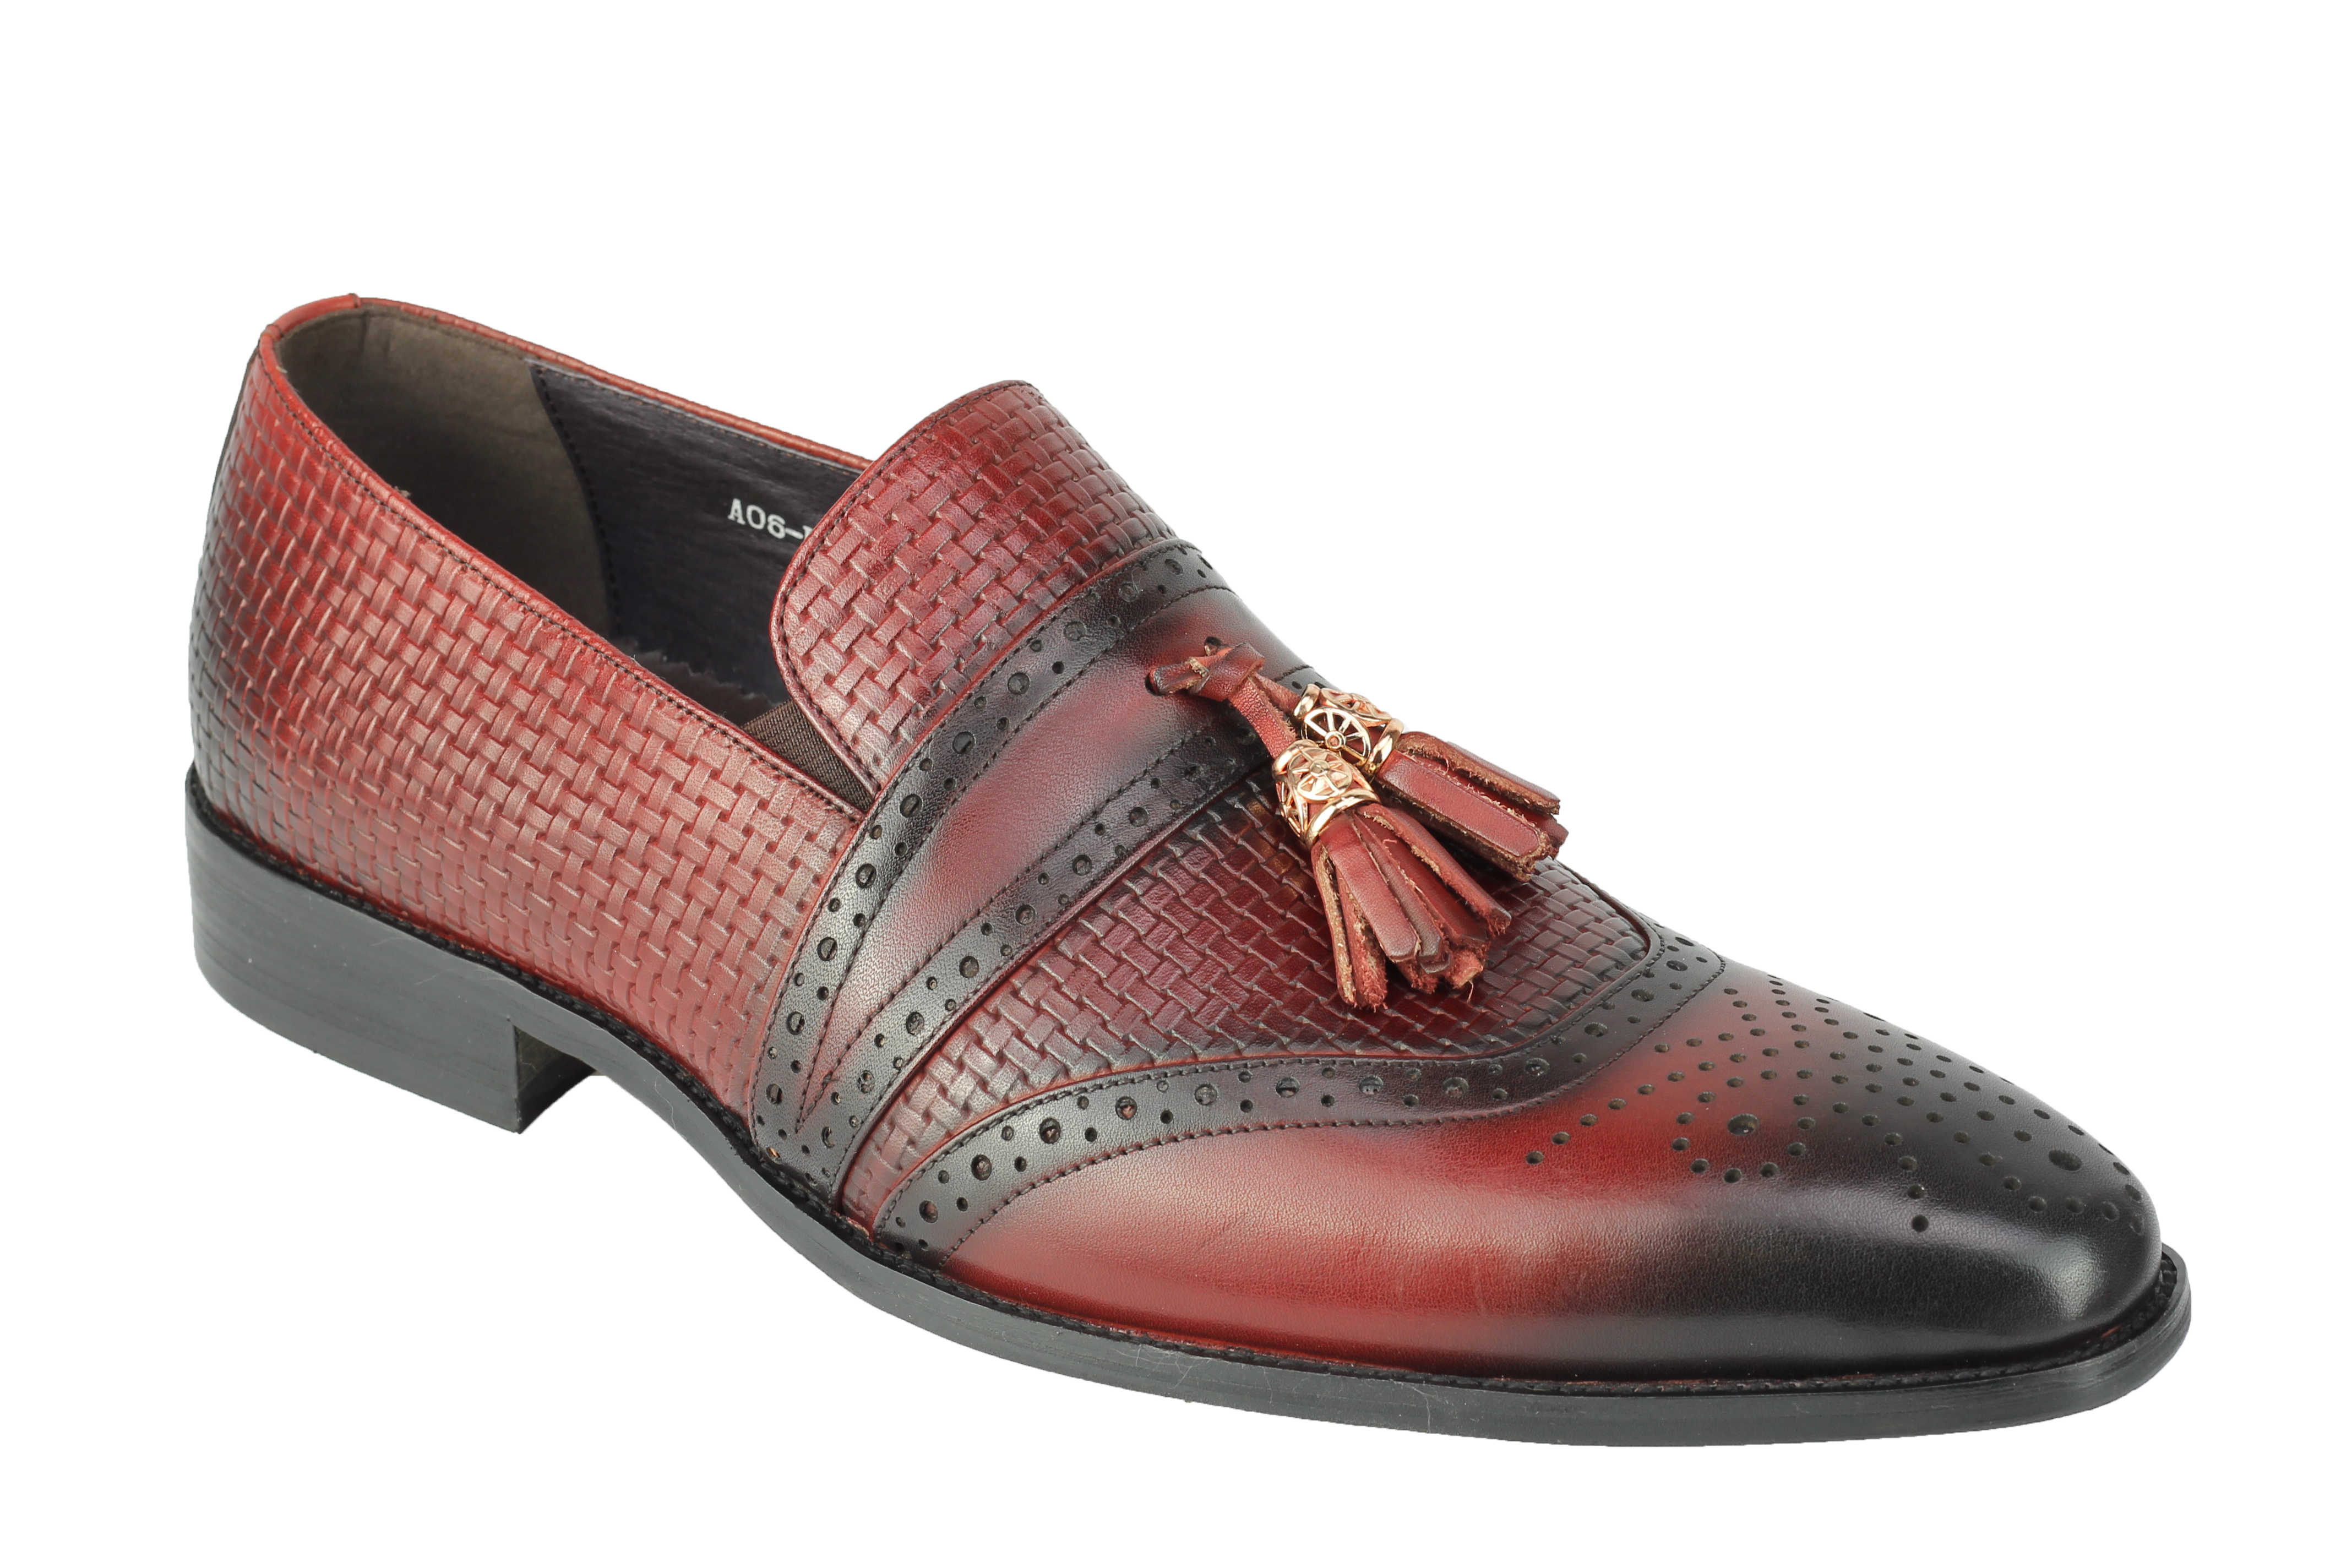 Mens-Real-Leather-Slip-on-Tassel-Loafers-High-Detailed-Smart-Dress-Party-Shoes thumbnail 9